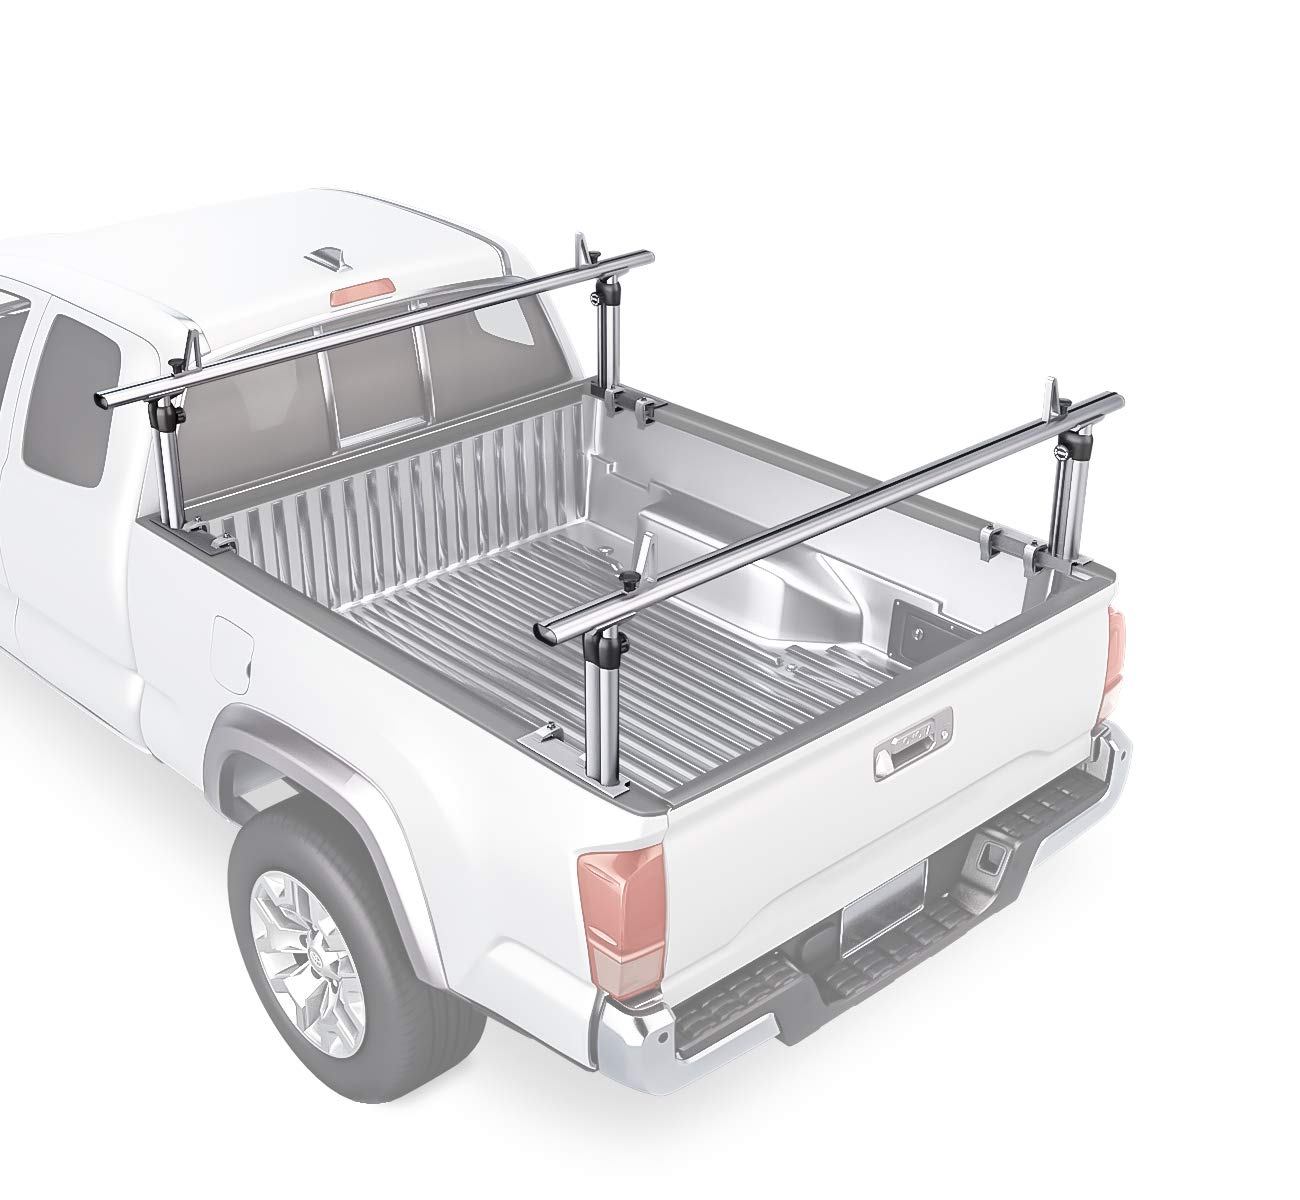 "AA-Racks Model APX2501 75"" Full-Size Pickup Truck Ladder Racks Low-profile Height-Adjustable Utility Aluminum Truck Bed Rack with Load Stops"